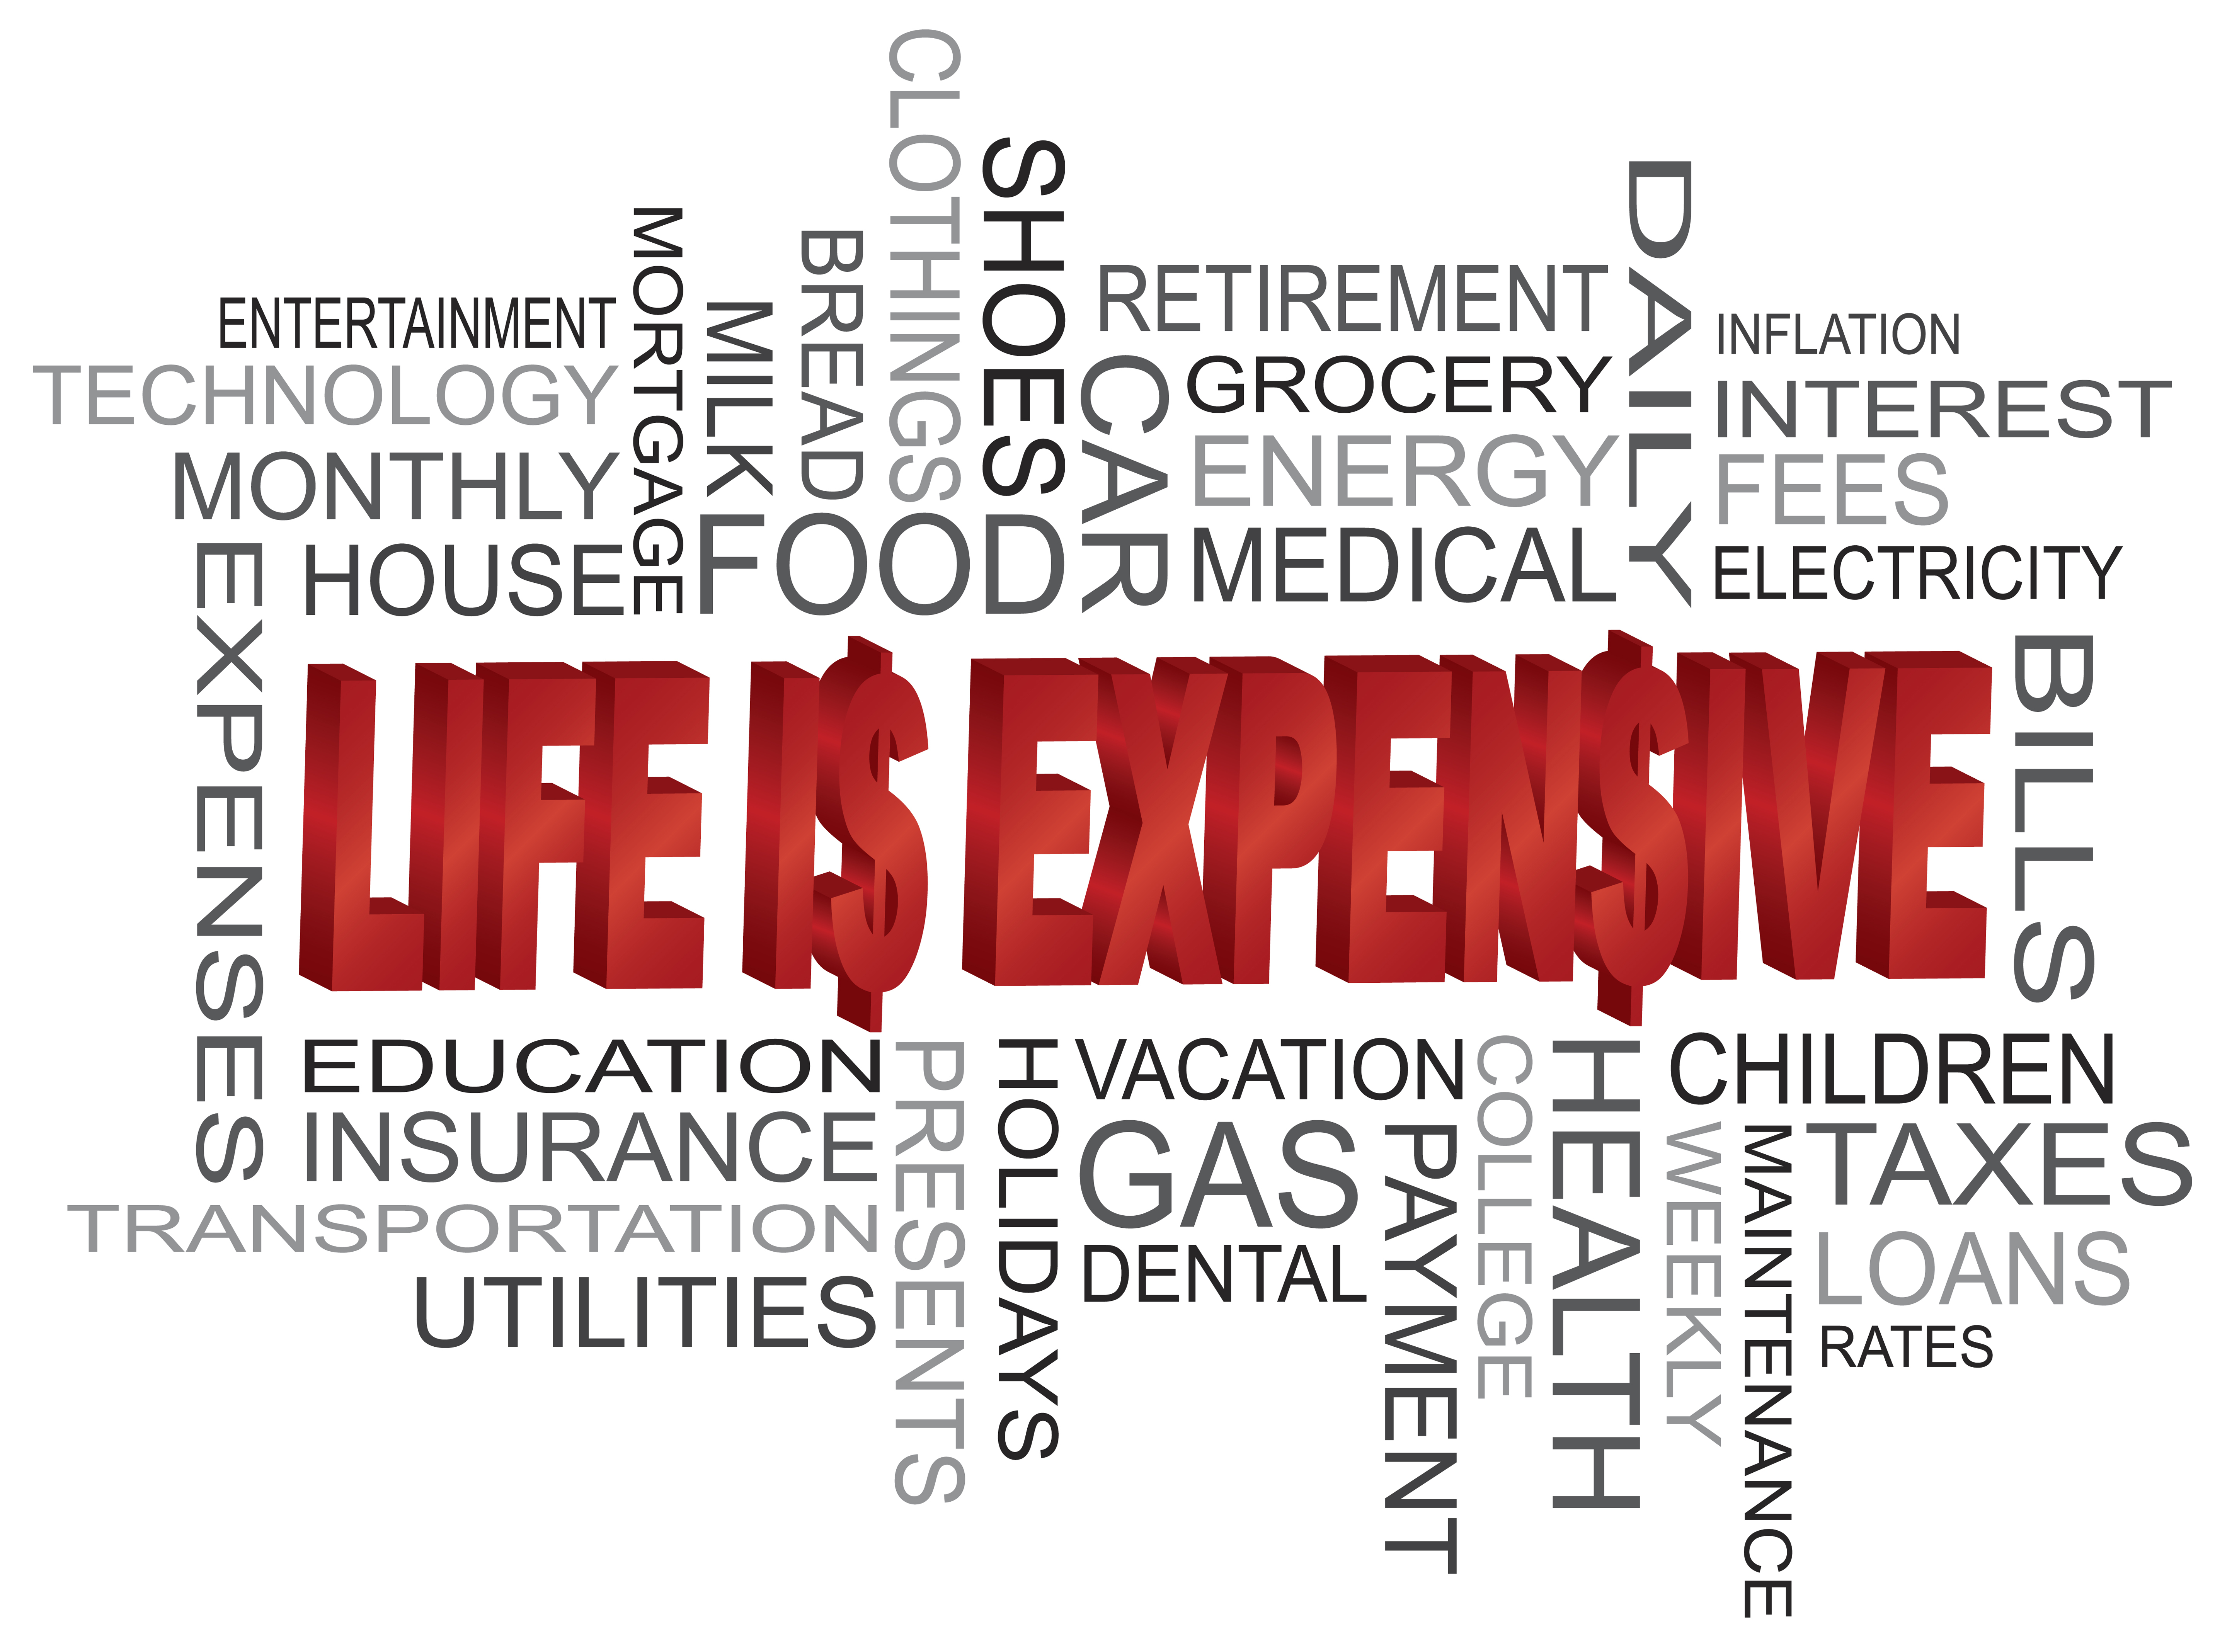 Whole Life Insurance Premiums: How Flexible Are They?